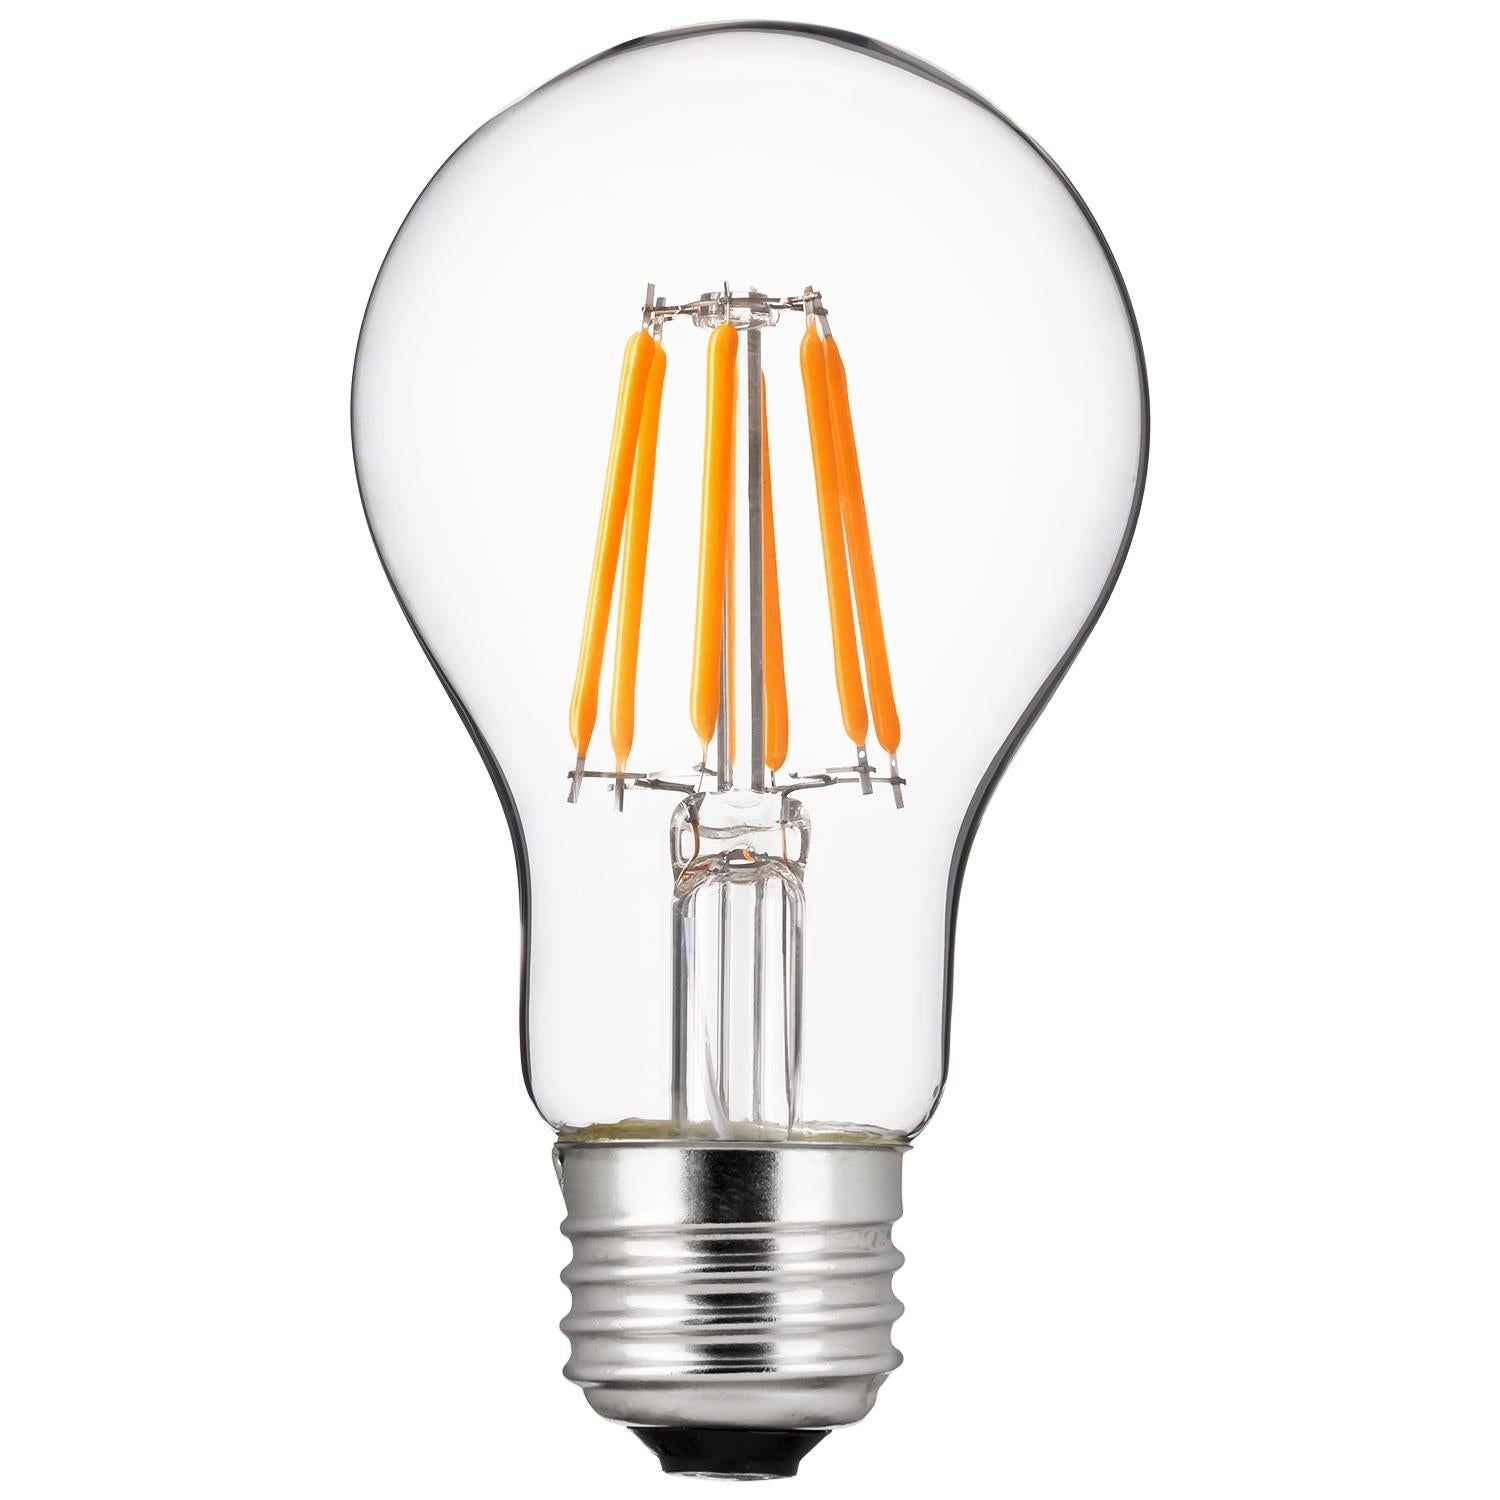 SUNLITE 80456-SU LED Vintage A19 Edison 6w Light Bulb 2200K Warm White